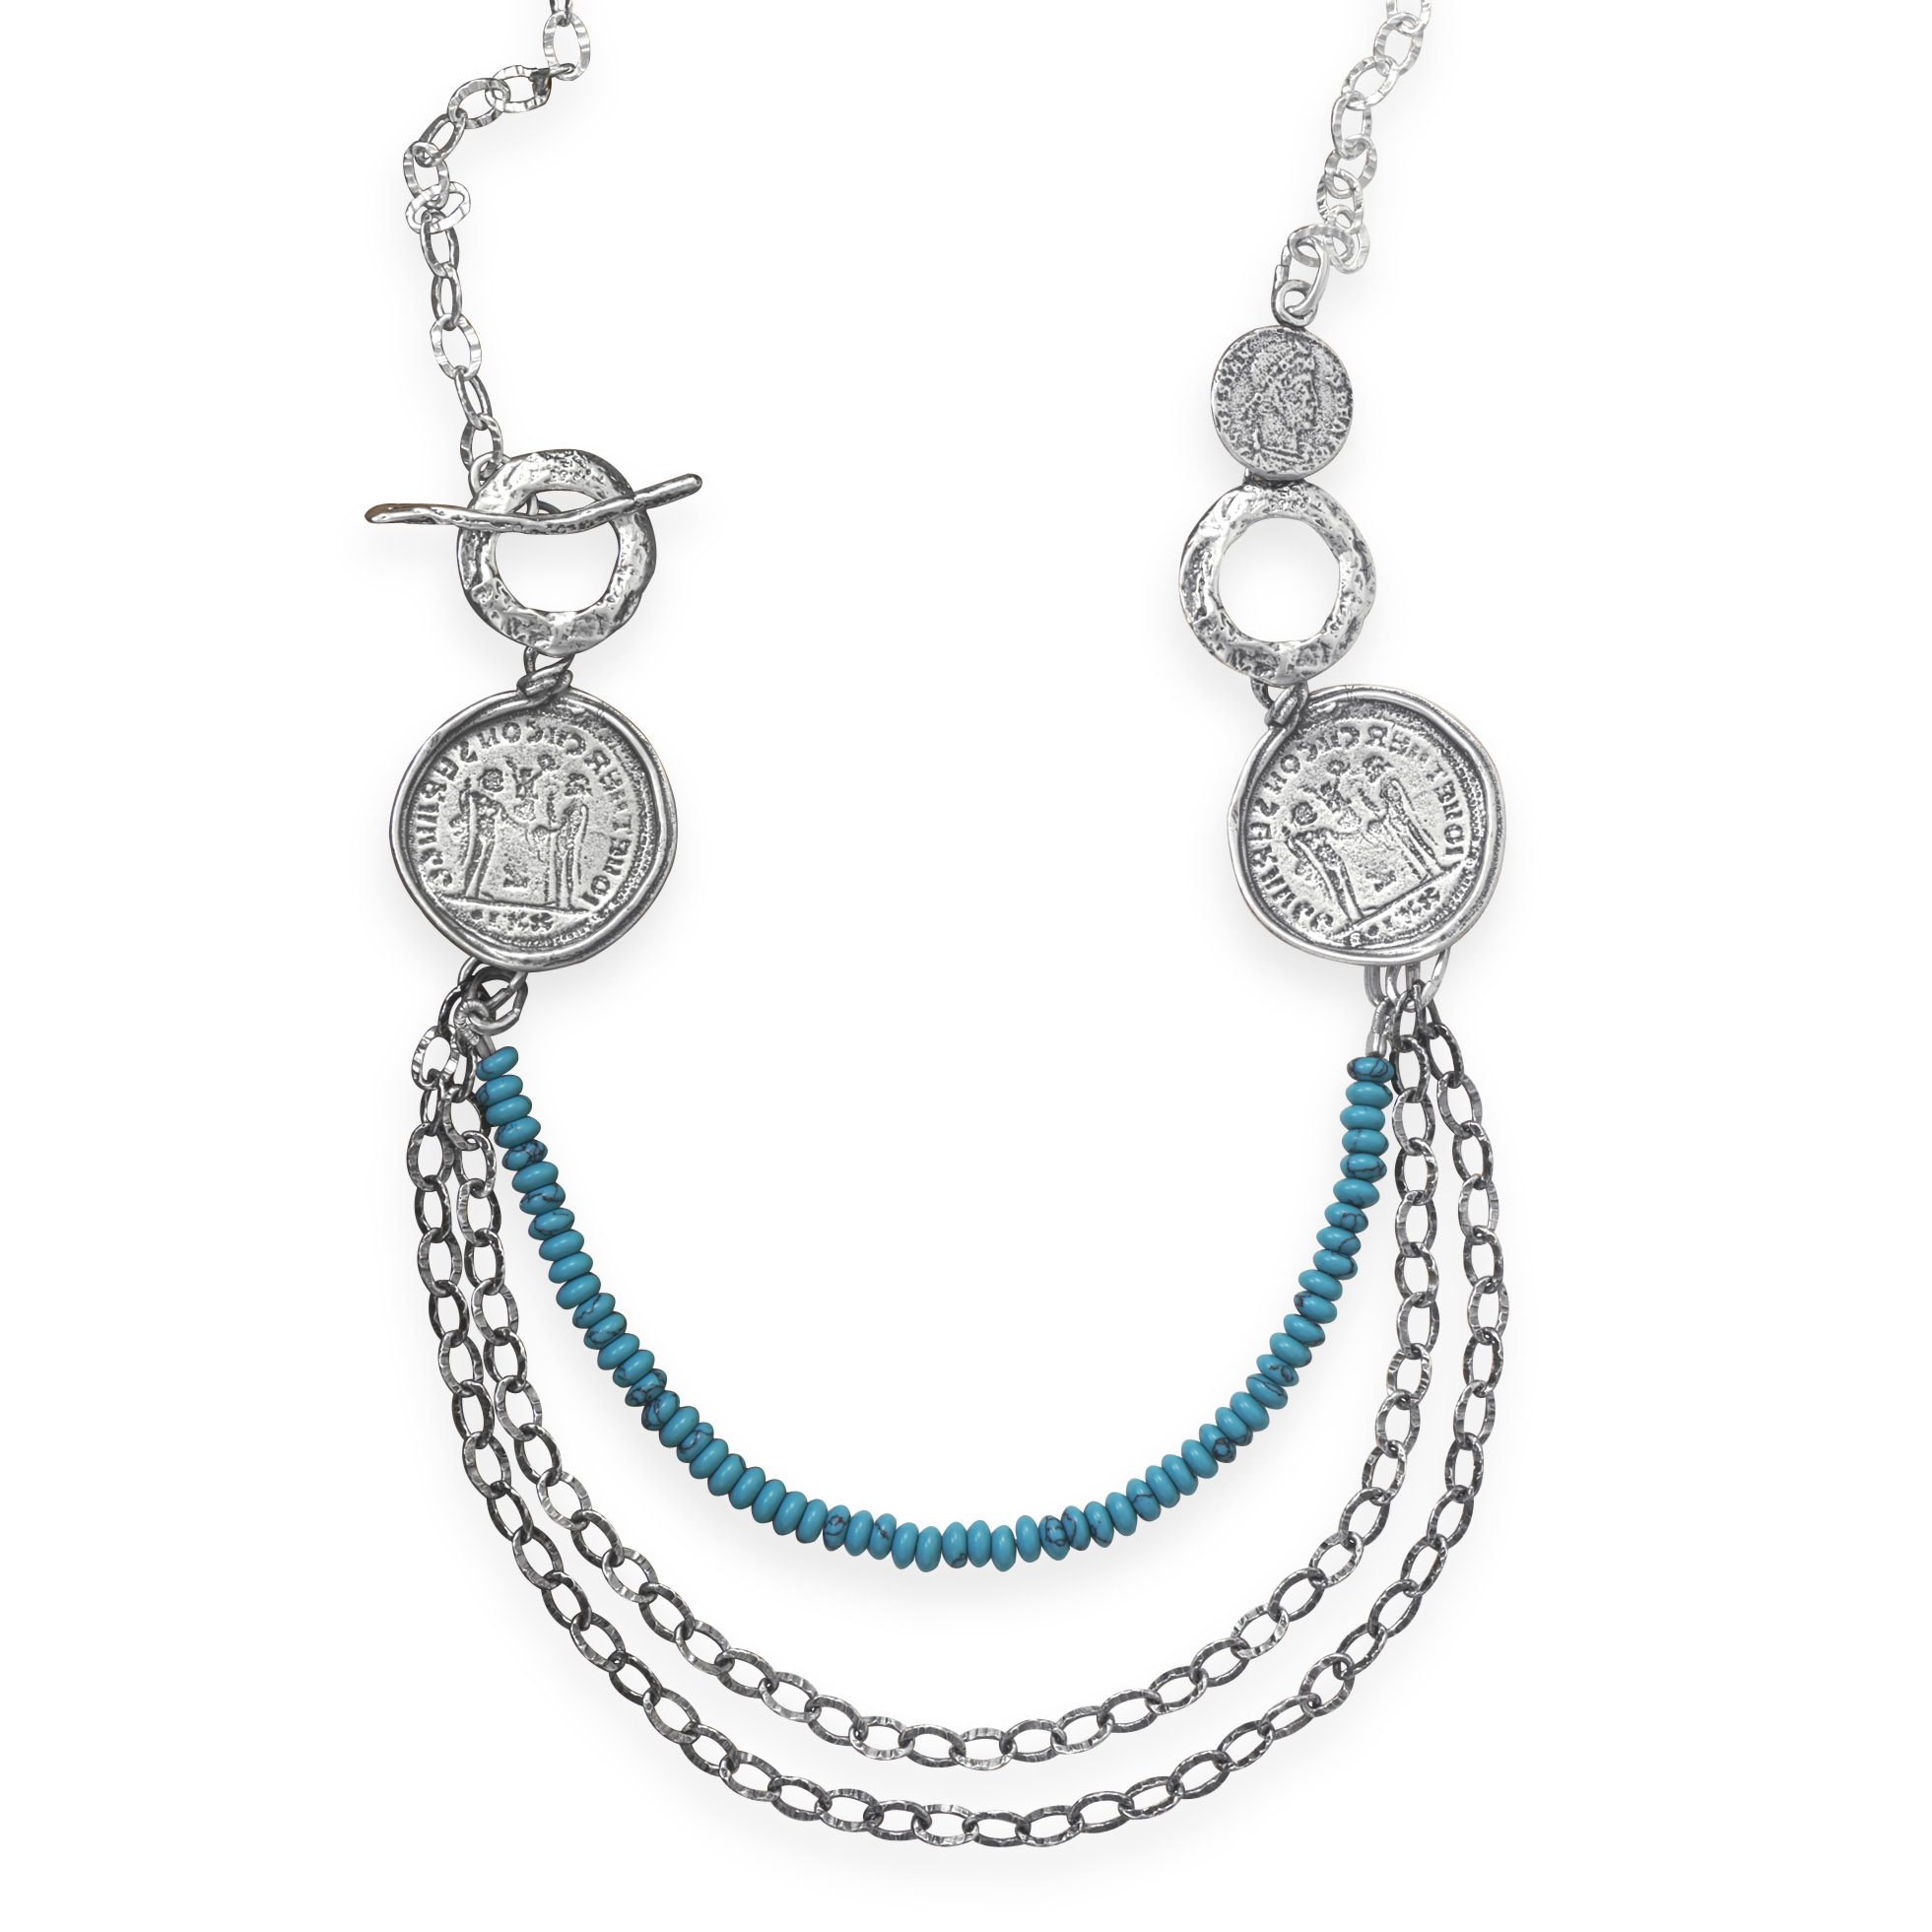 Bib Necklace With Ancient Roman Coin Replicas Side Toggle